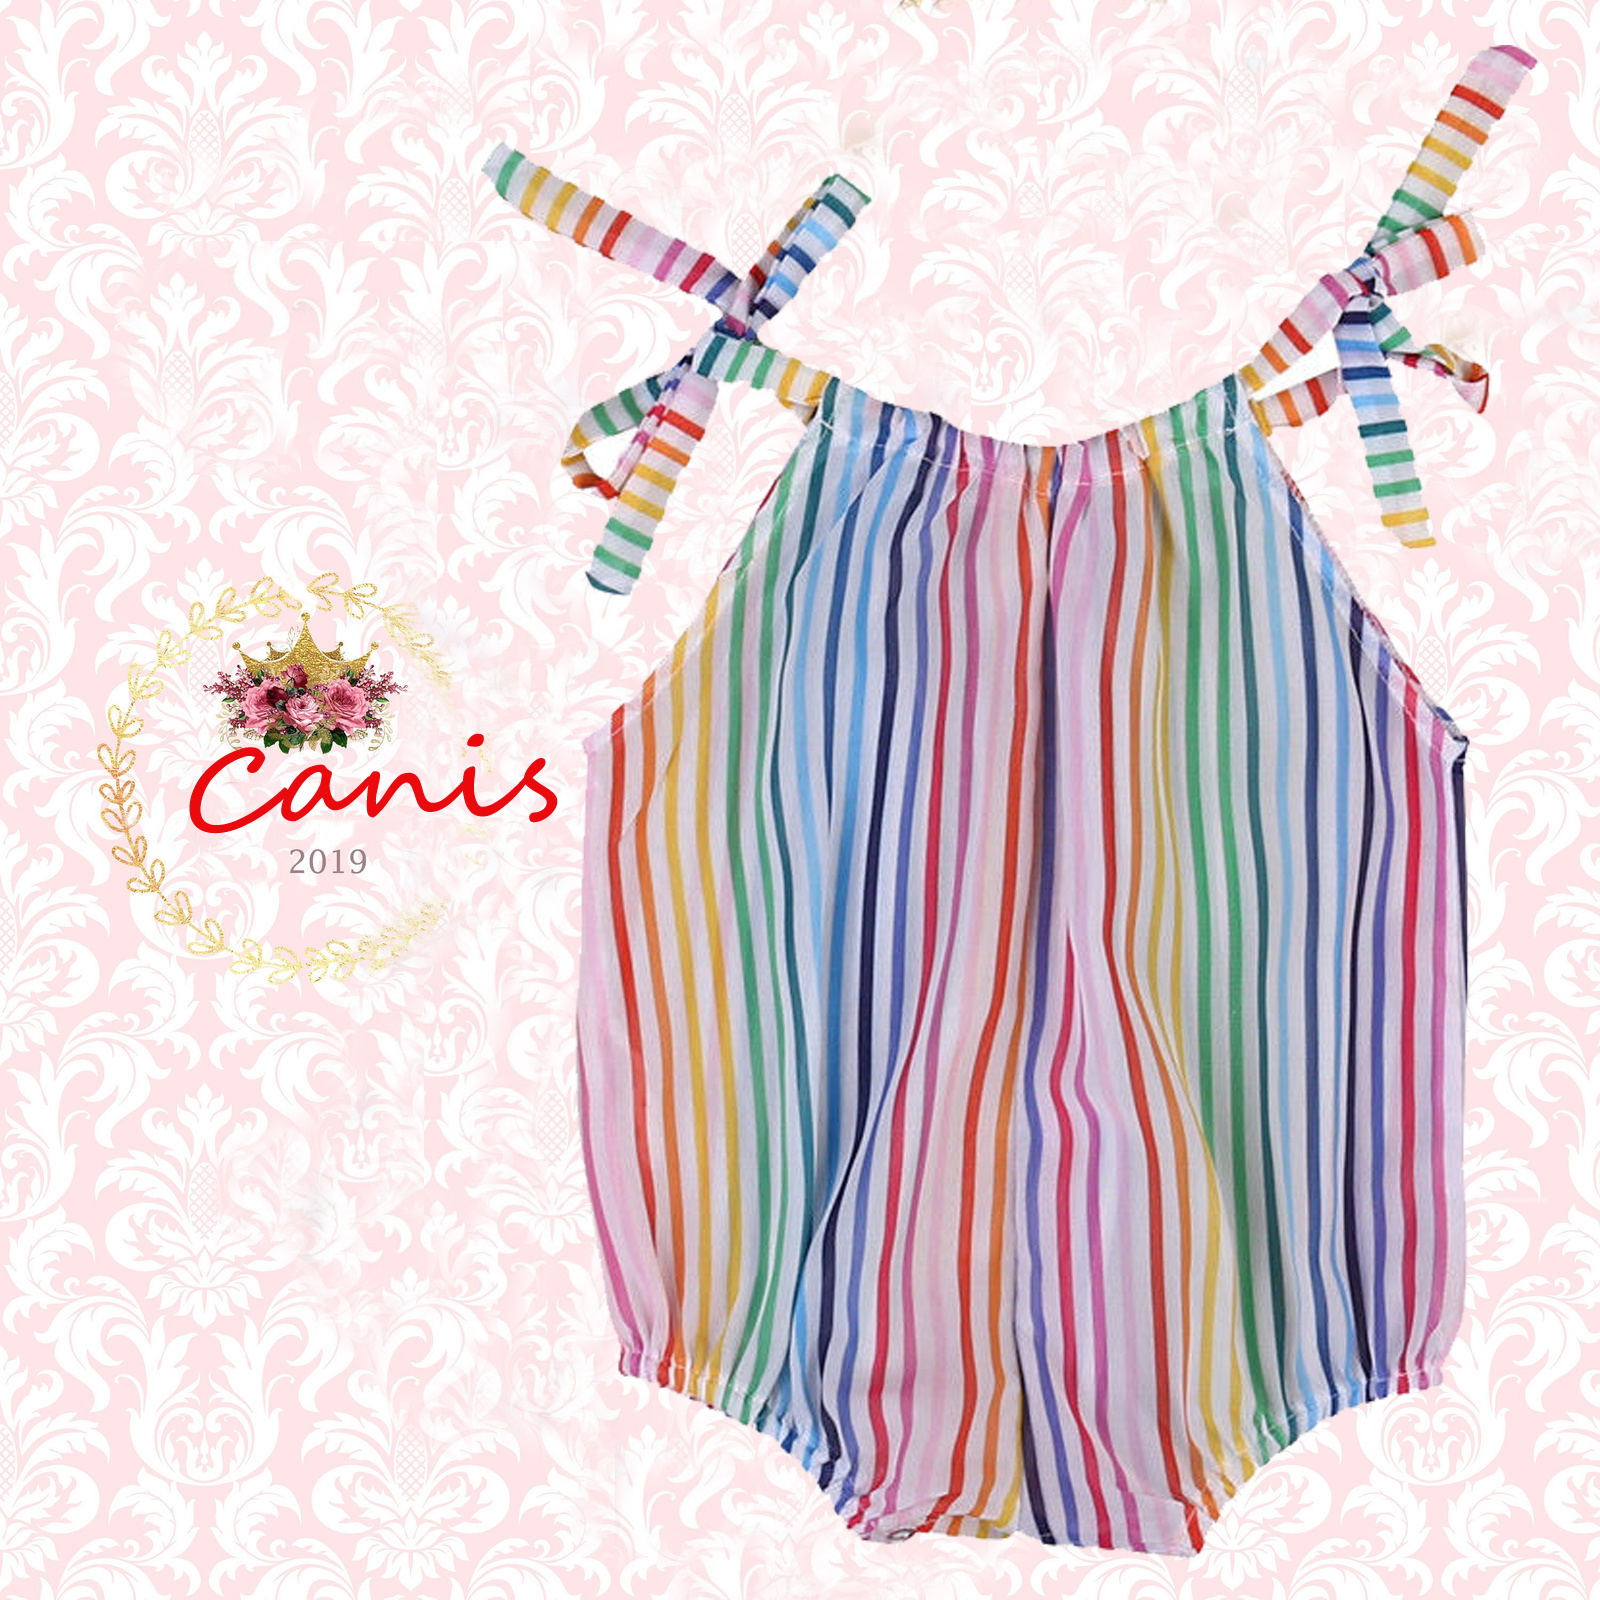 837072be54b24 Details about US STOCK Toddler Baby Girls Rainbow Striped Romper Jumpsuit  Bodysuit Outfits Set